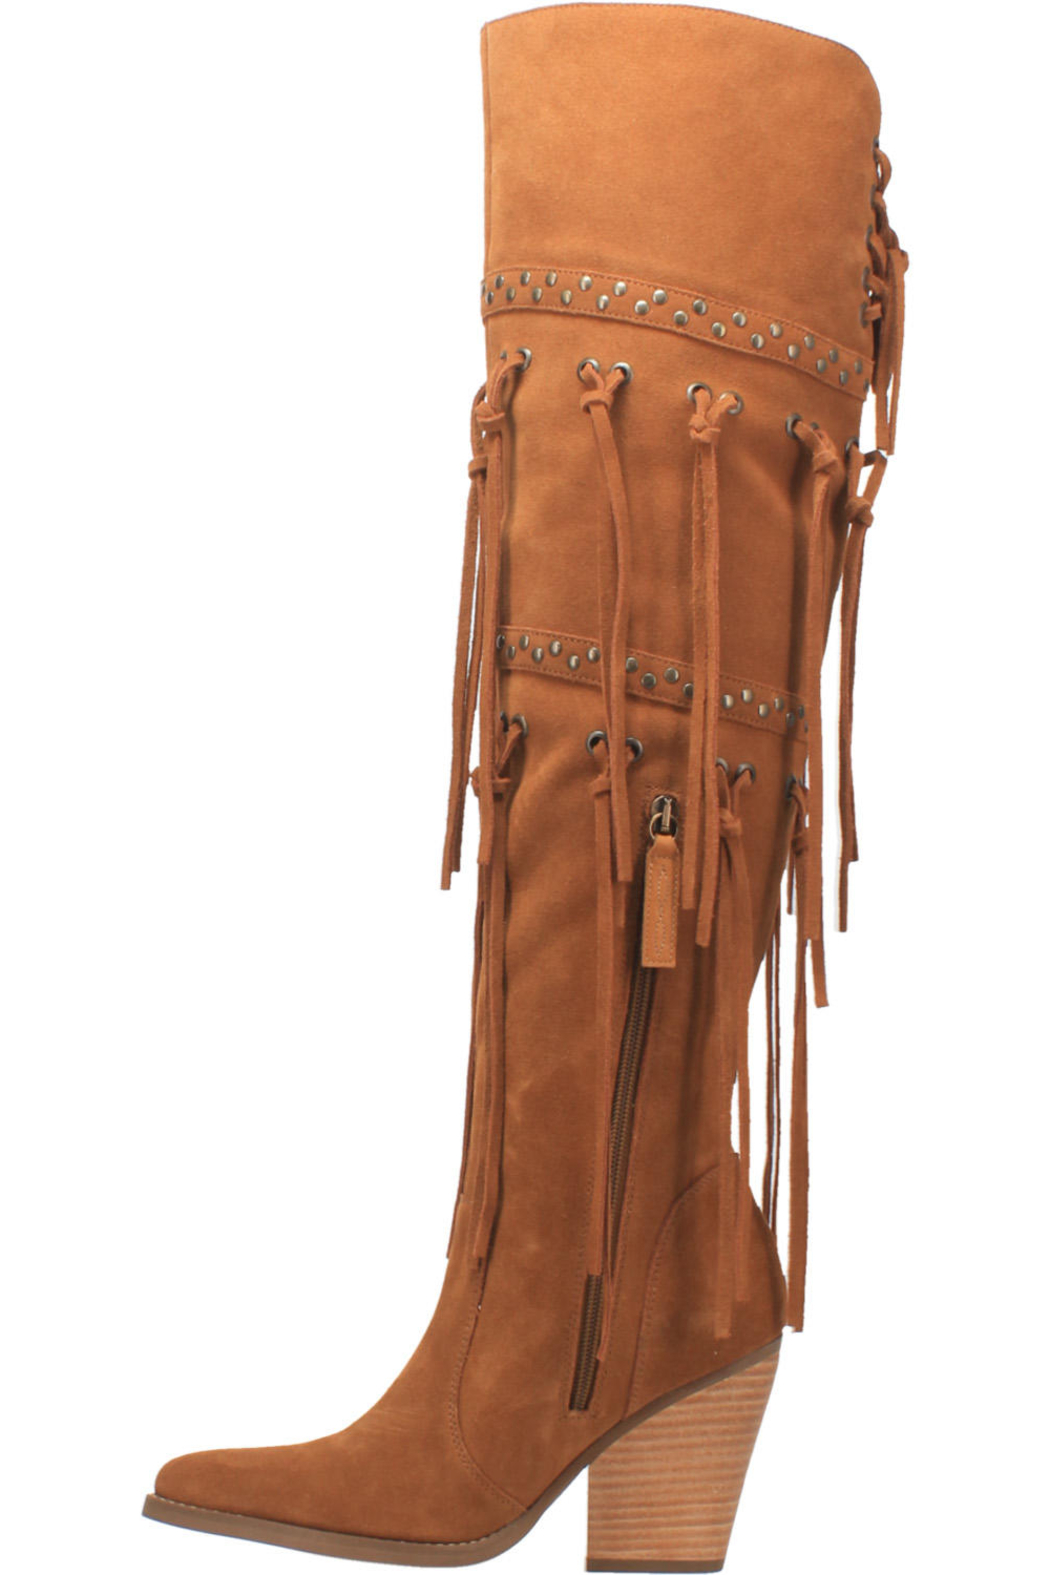 Dan Post Boot Company Witchy Woman Boot - Front Full Image